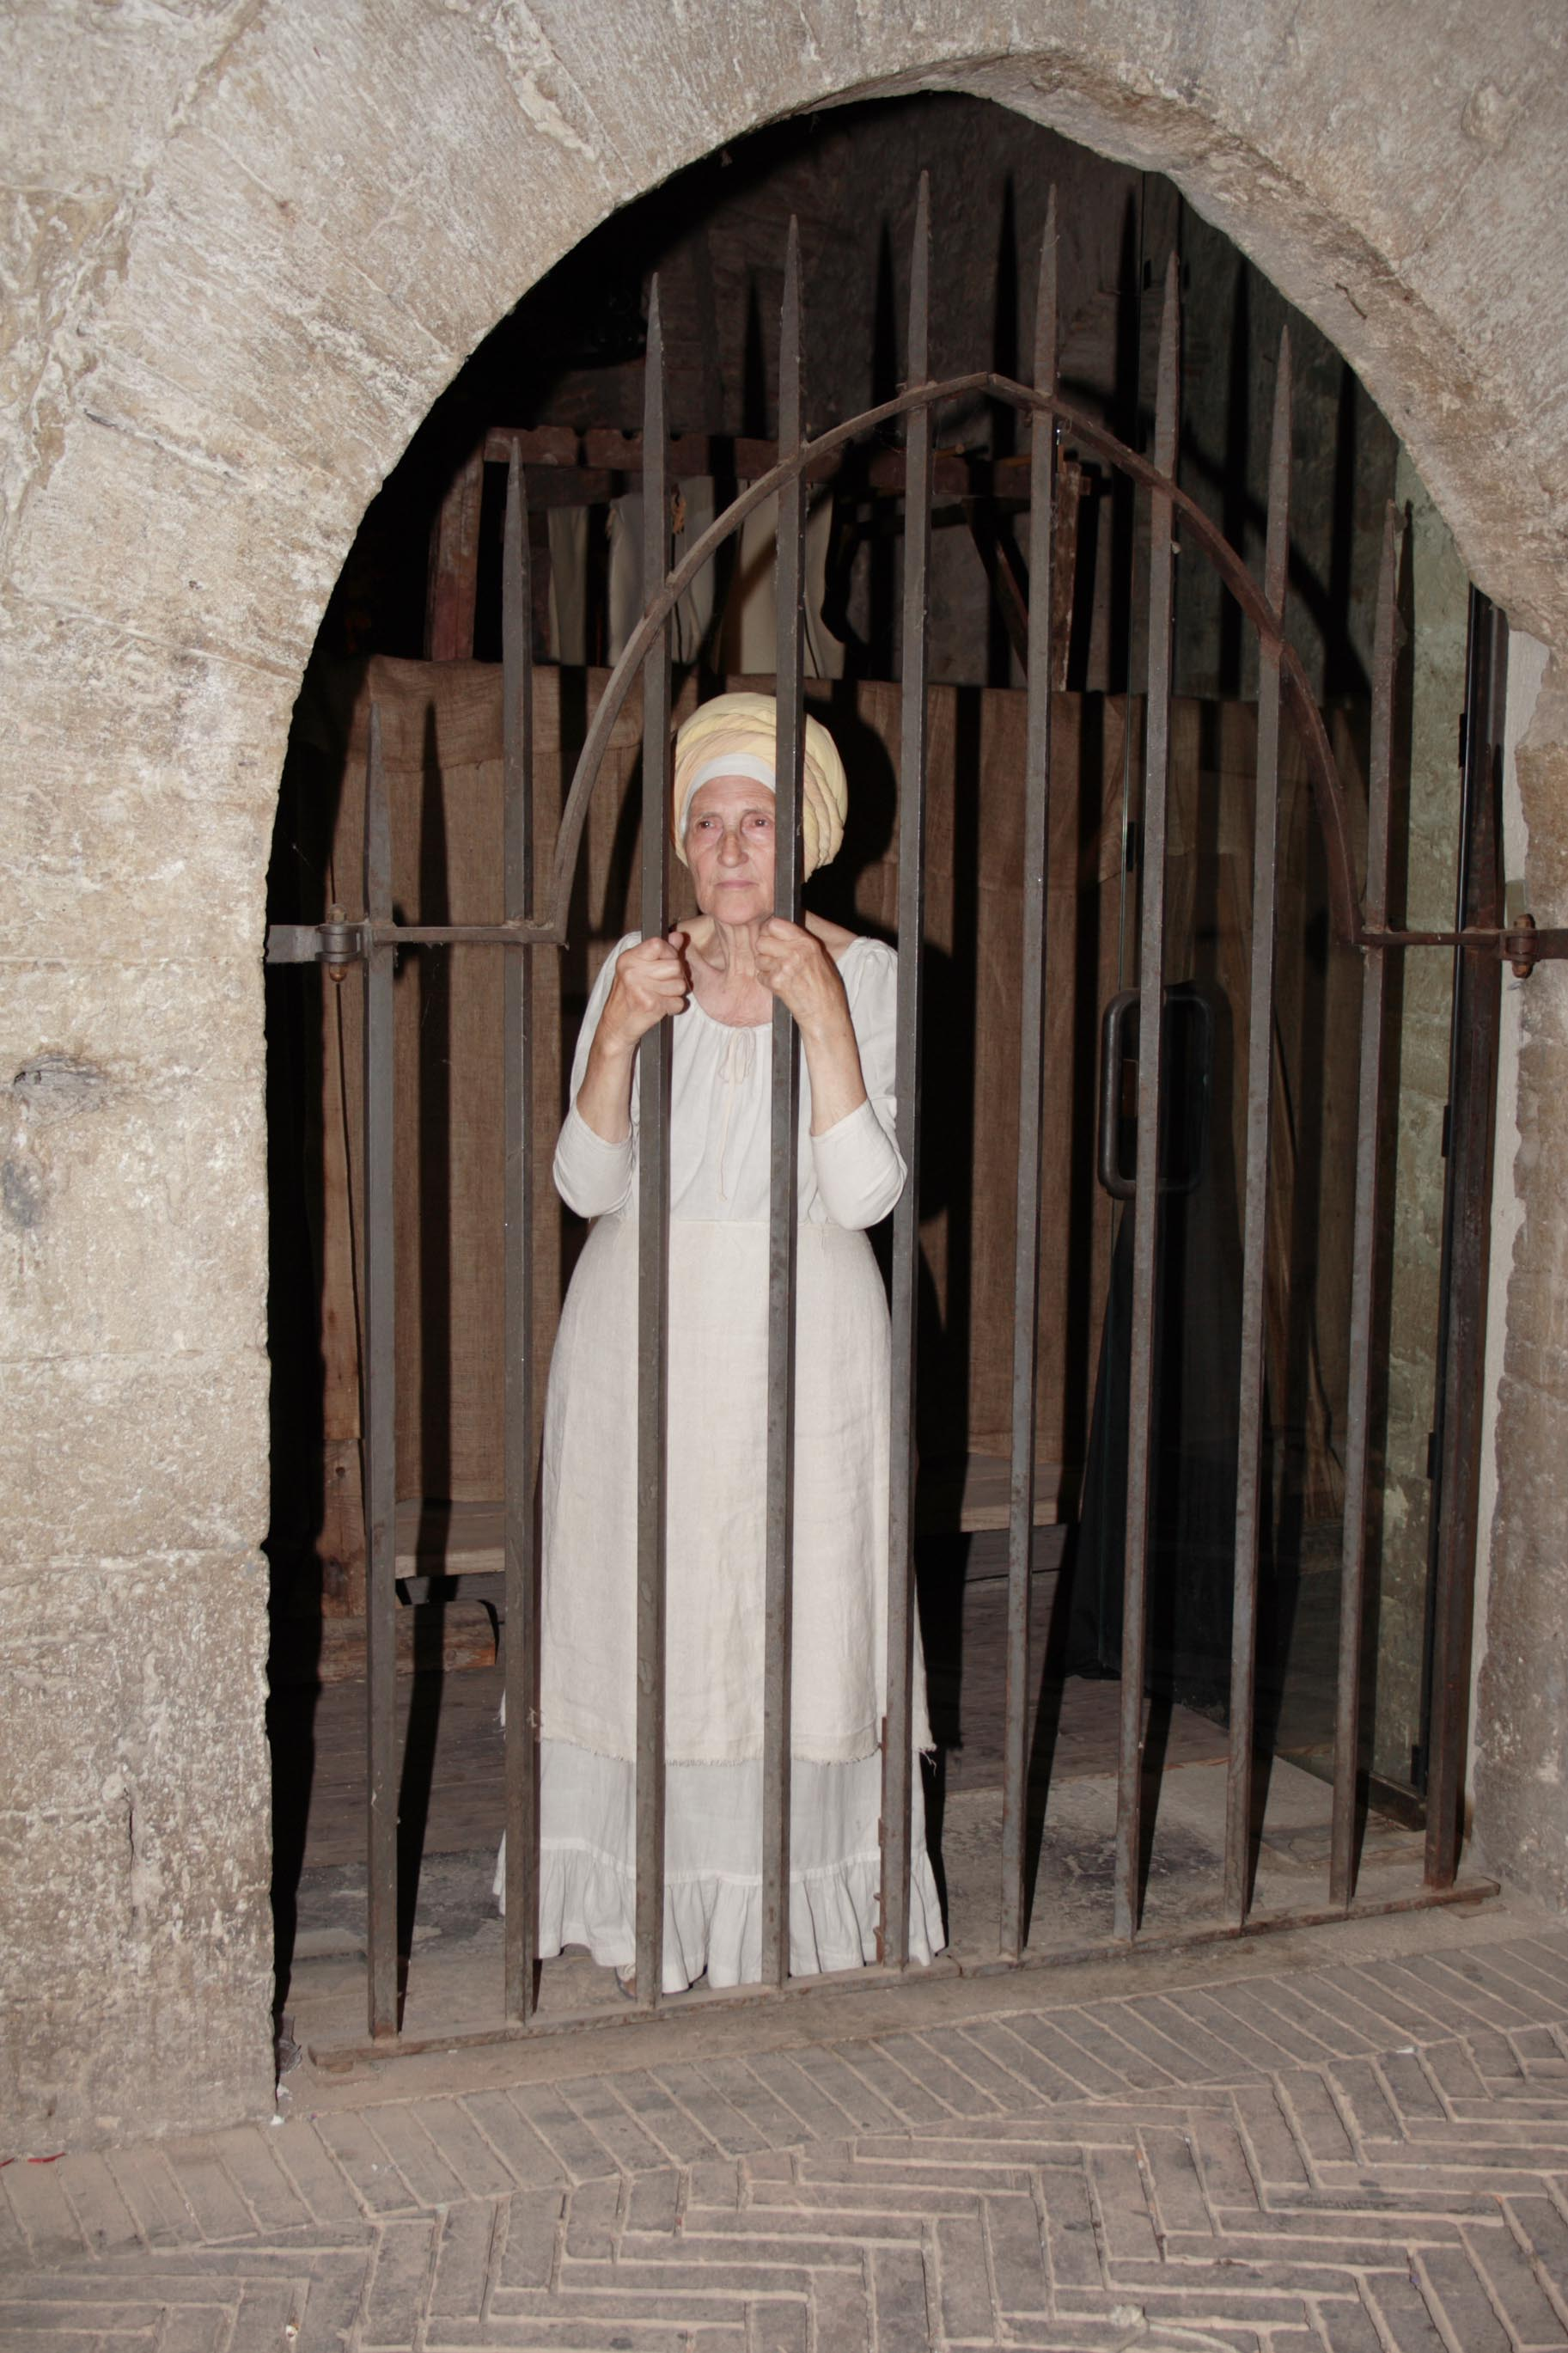 A medieval woman in jail